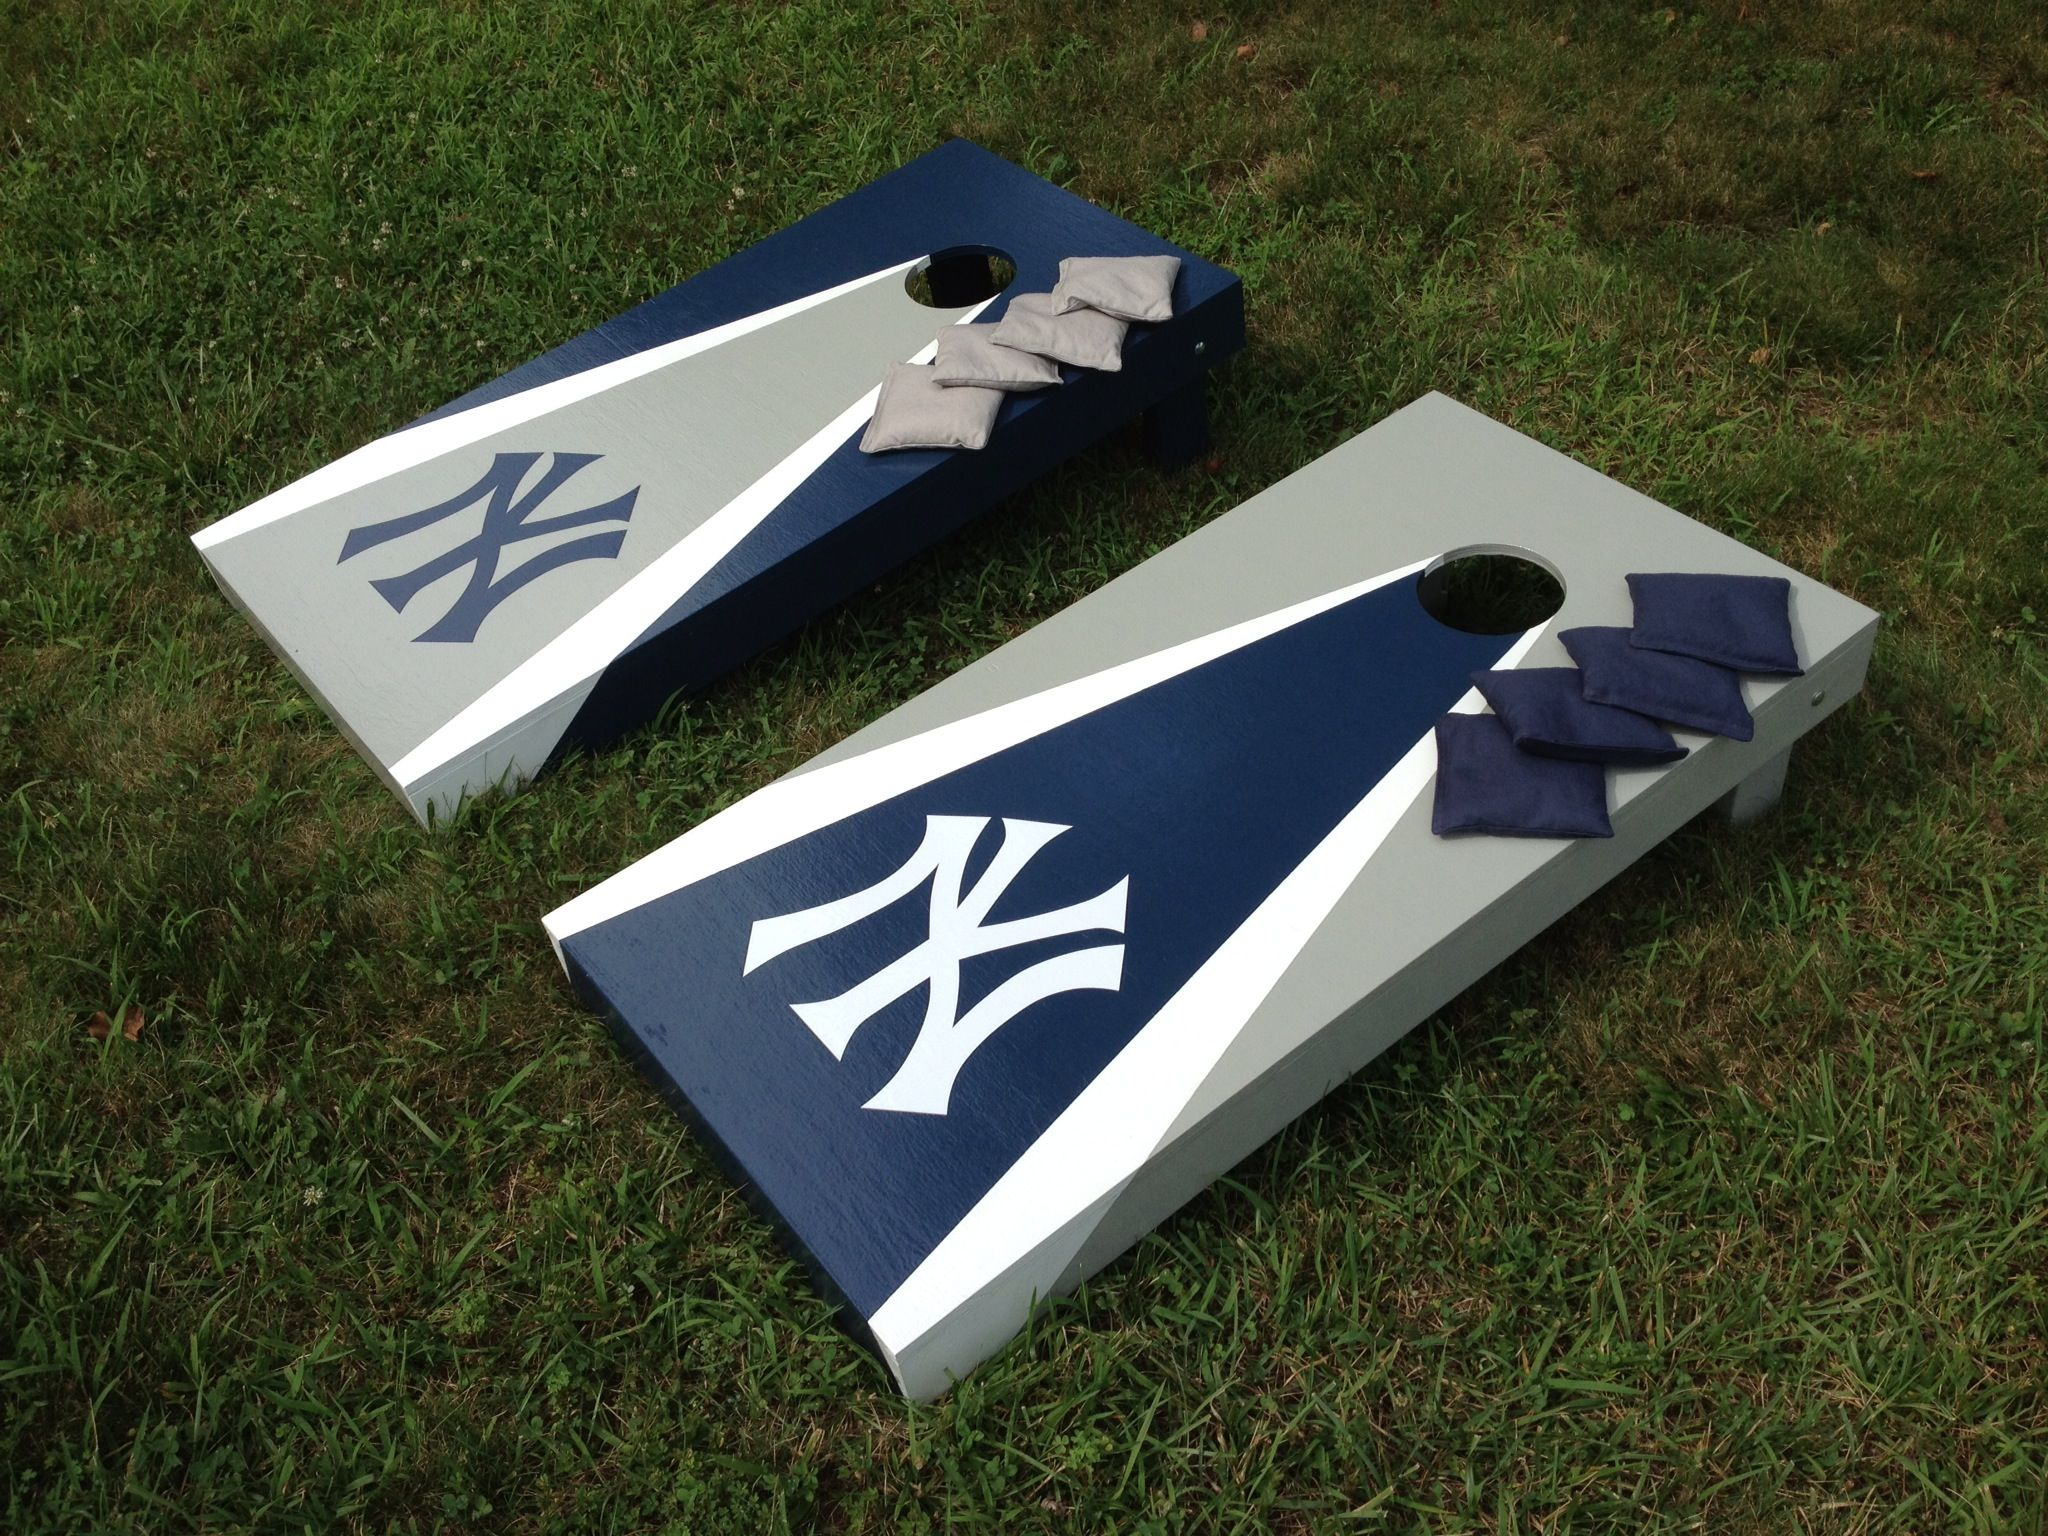 Yankees Cornhole Boards Made By Martys Carolina Cornhole On Facebook Cornhole Designs Cornhole Boards Designs Cornhole Boards